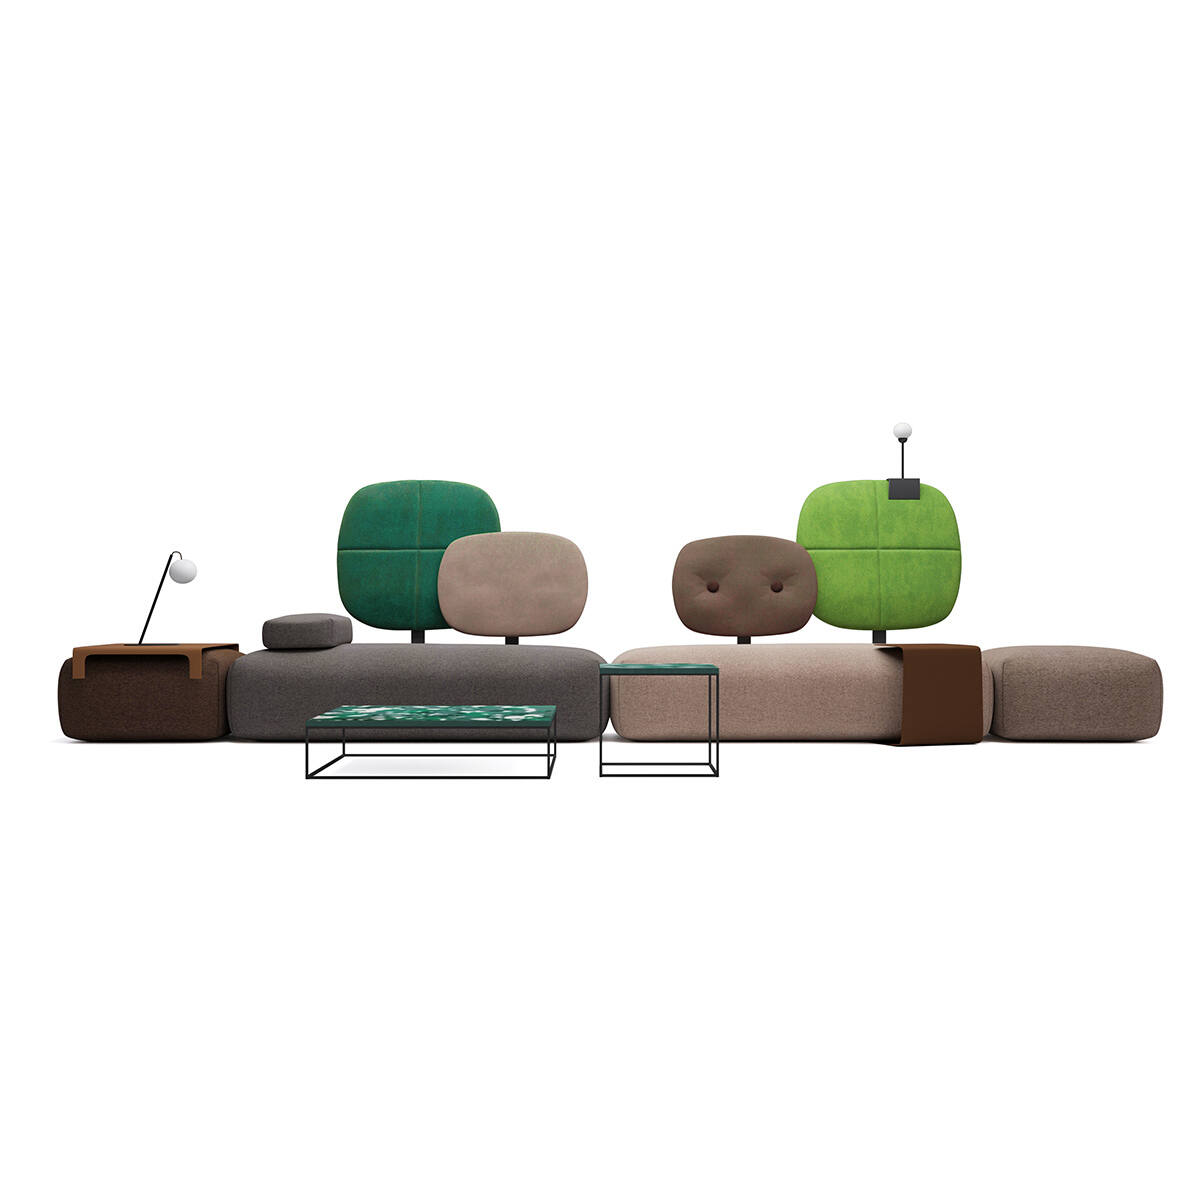 Hannabi Urban Nomad Sofa Box Model No 15 Box Hyperactive Hannabi Webshop